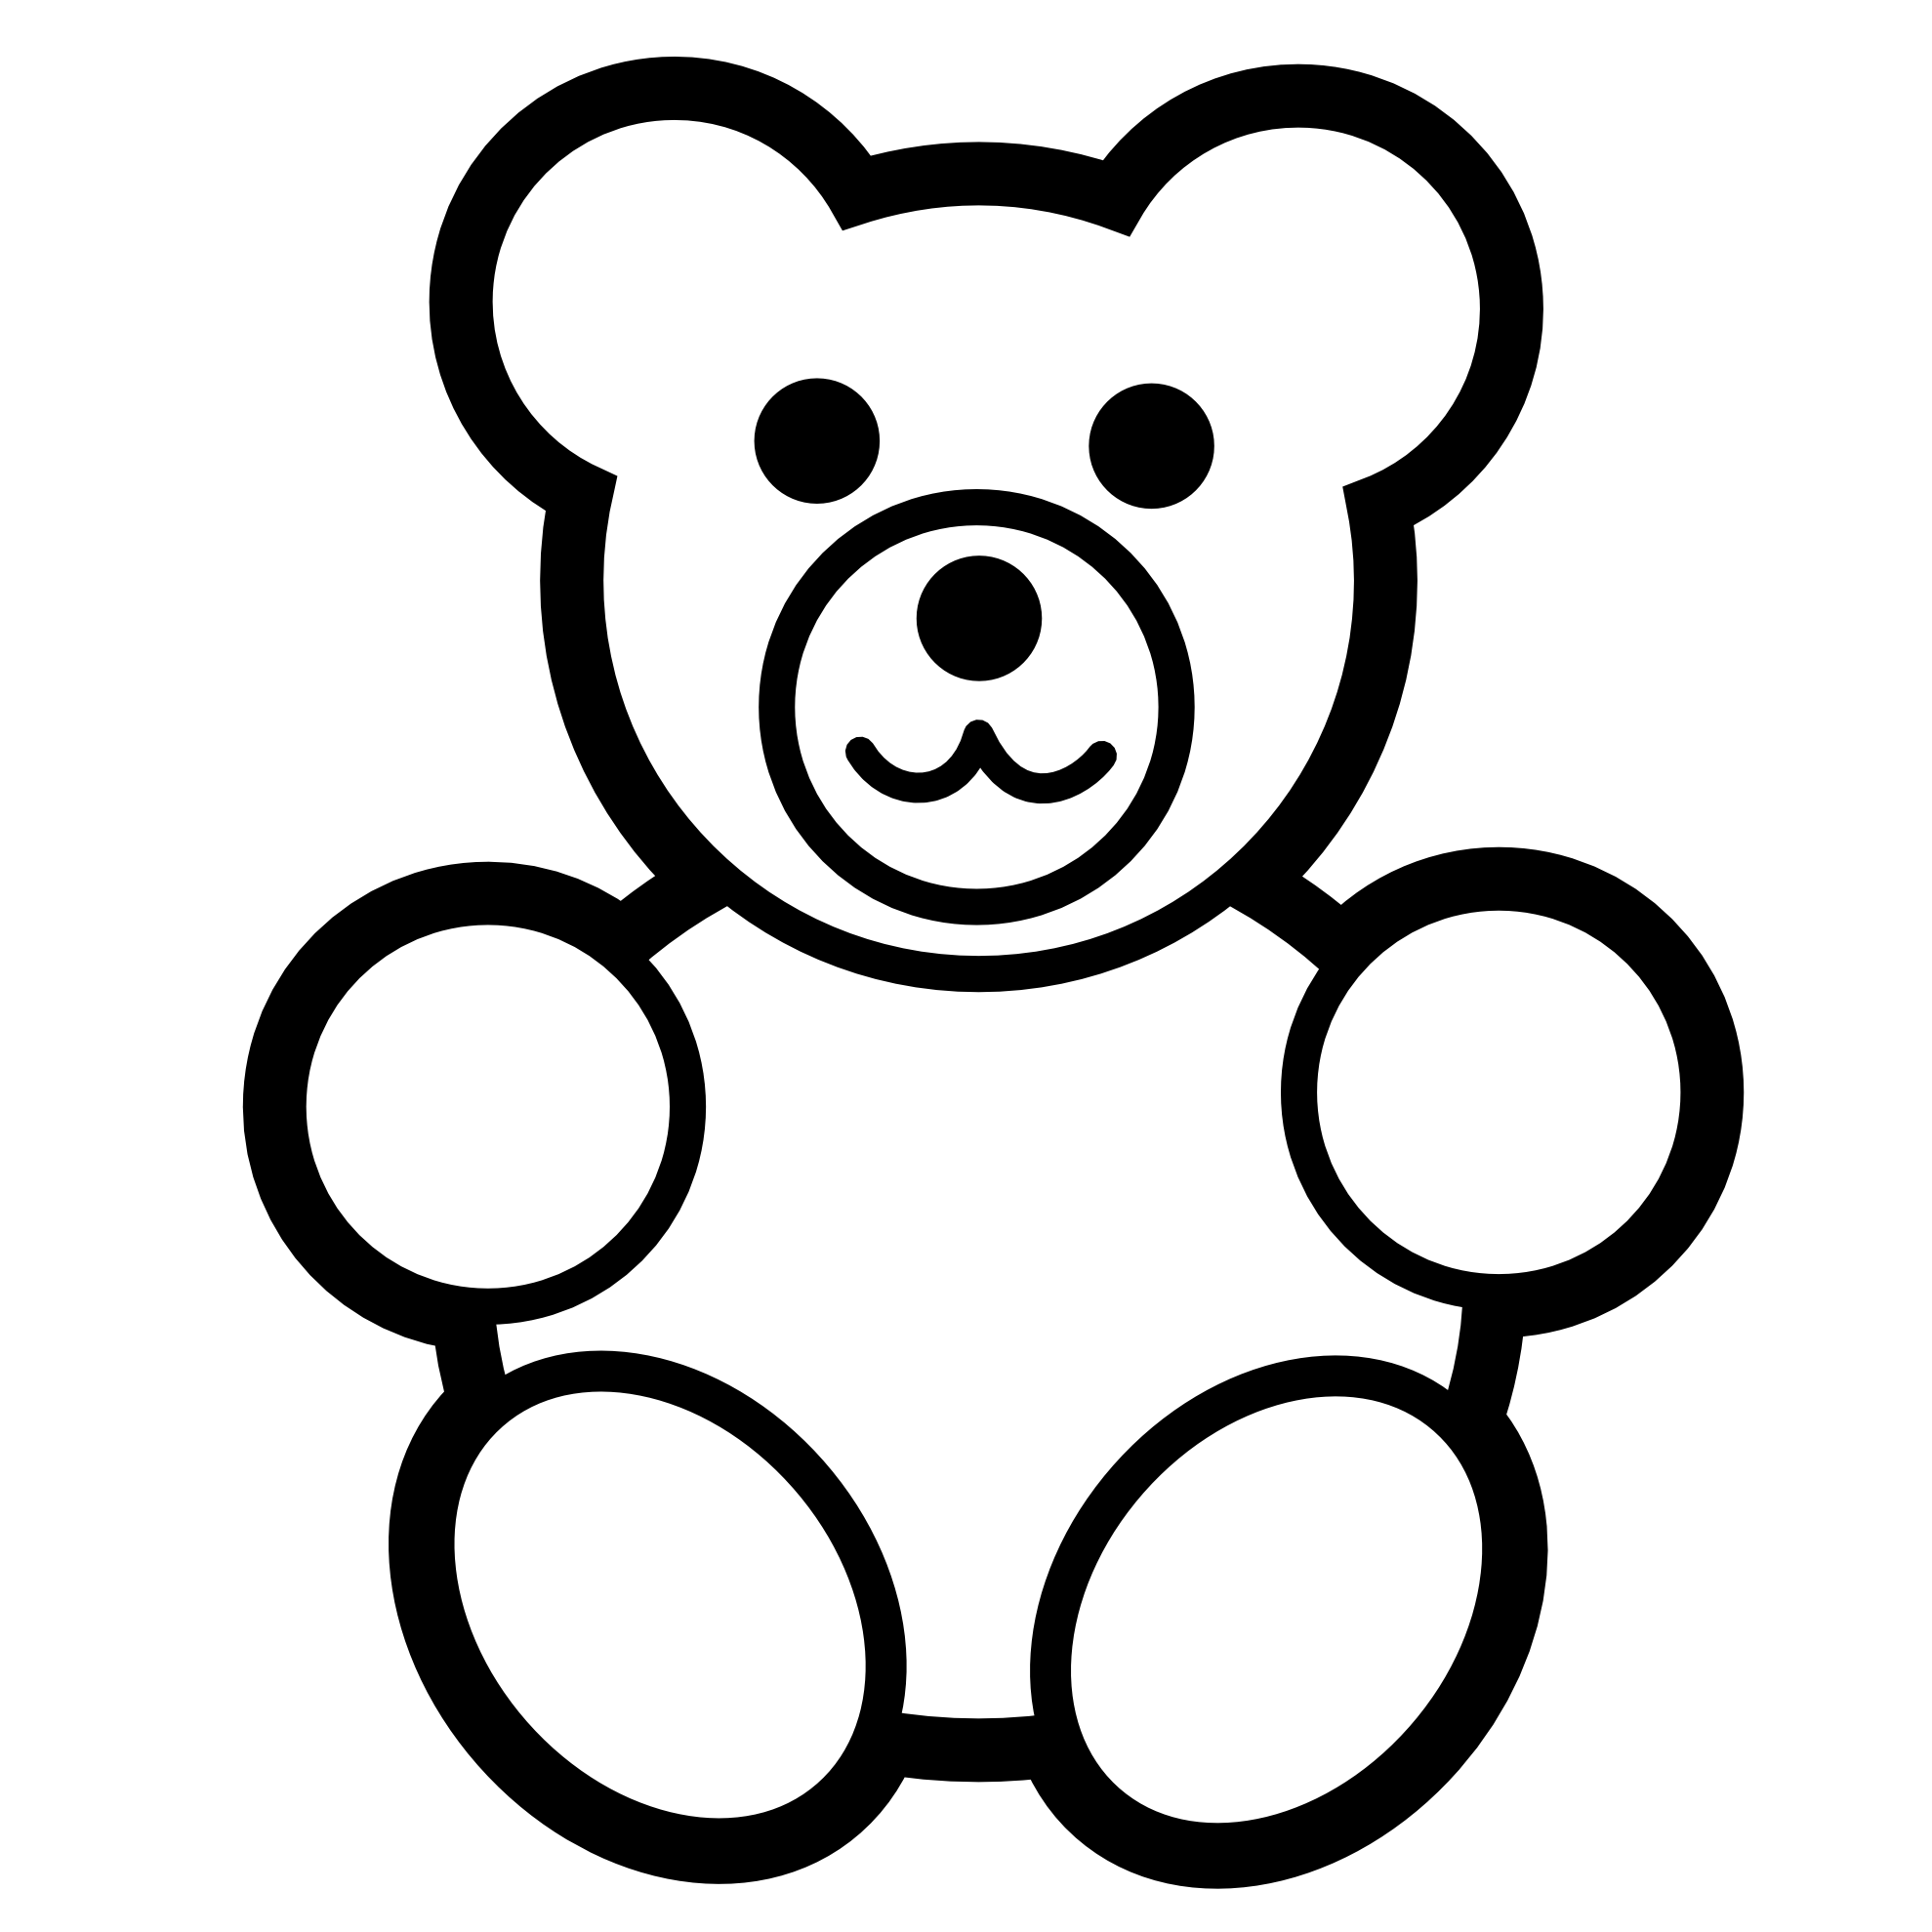 ... Gummy Bear Clipart ...-... Gummy bear clipart ...-10